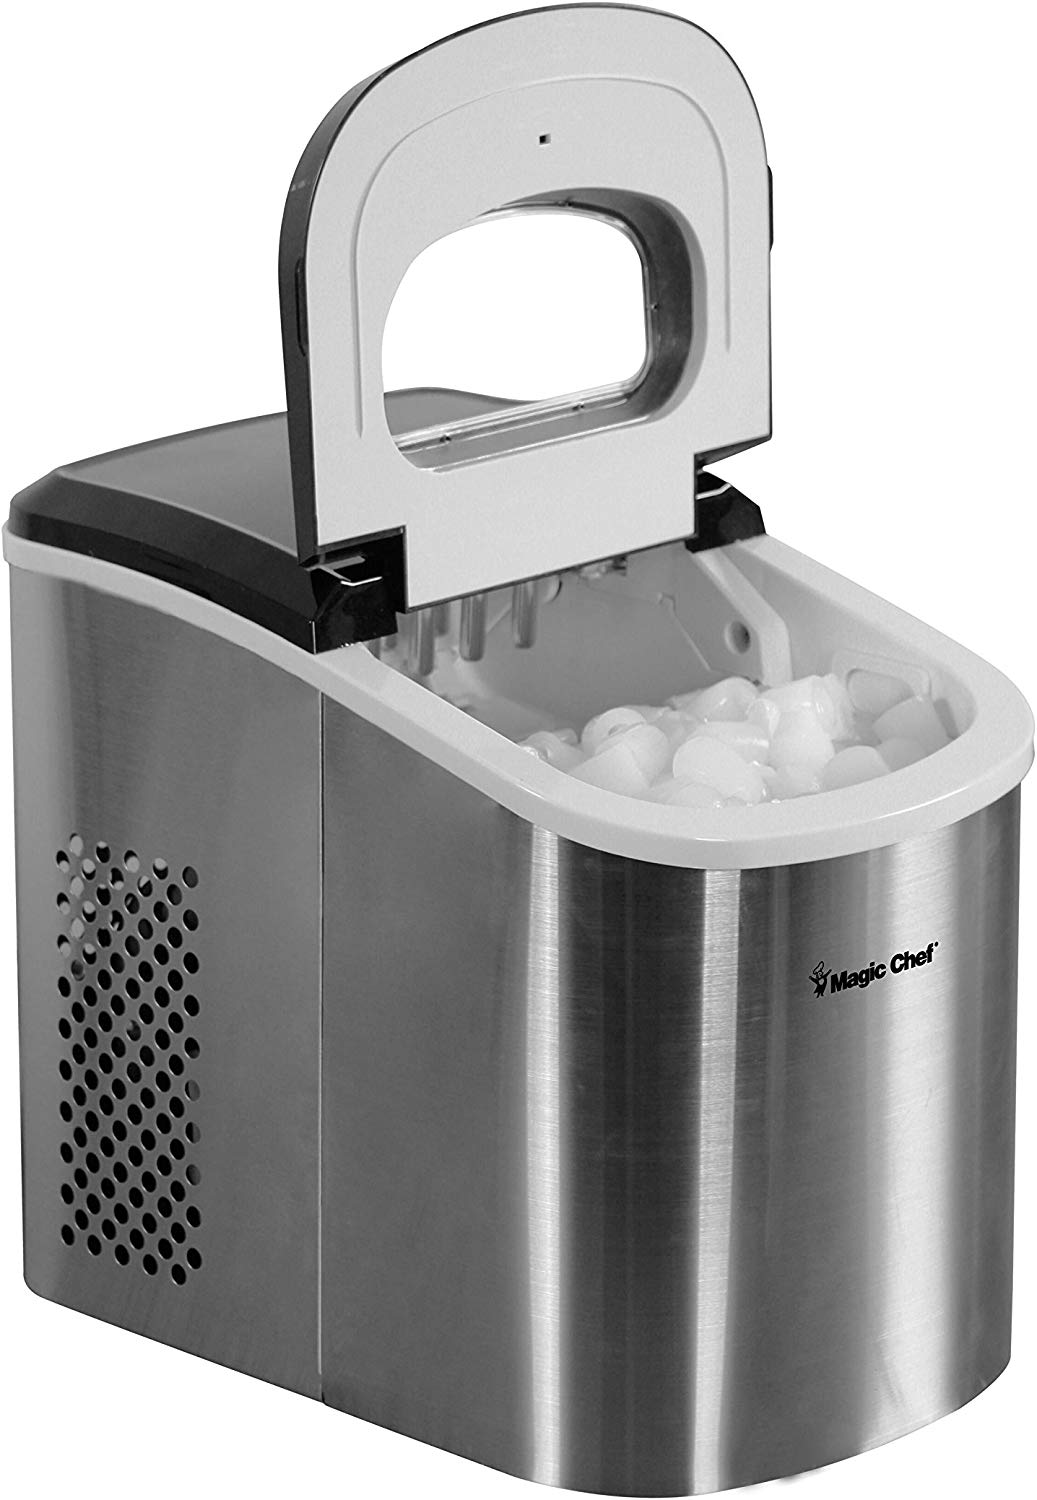 27lb-Capacity Ice Maker